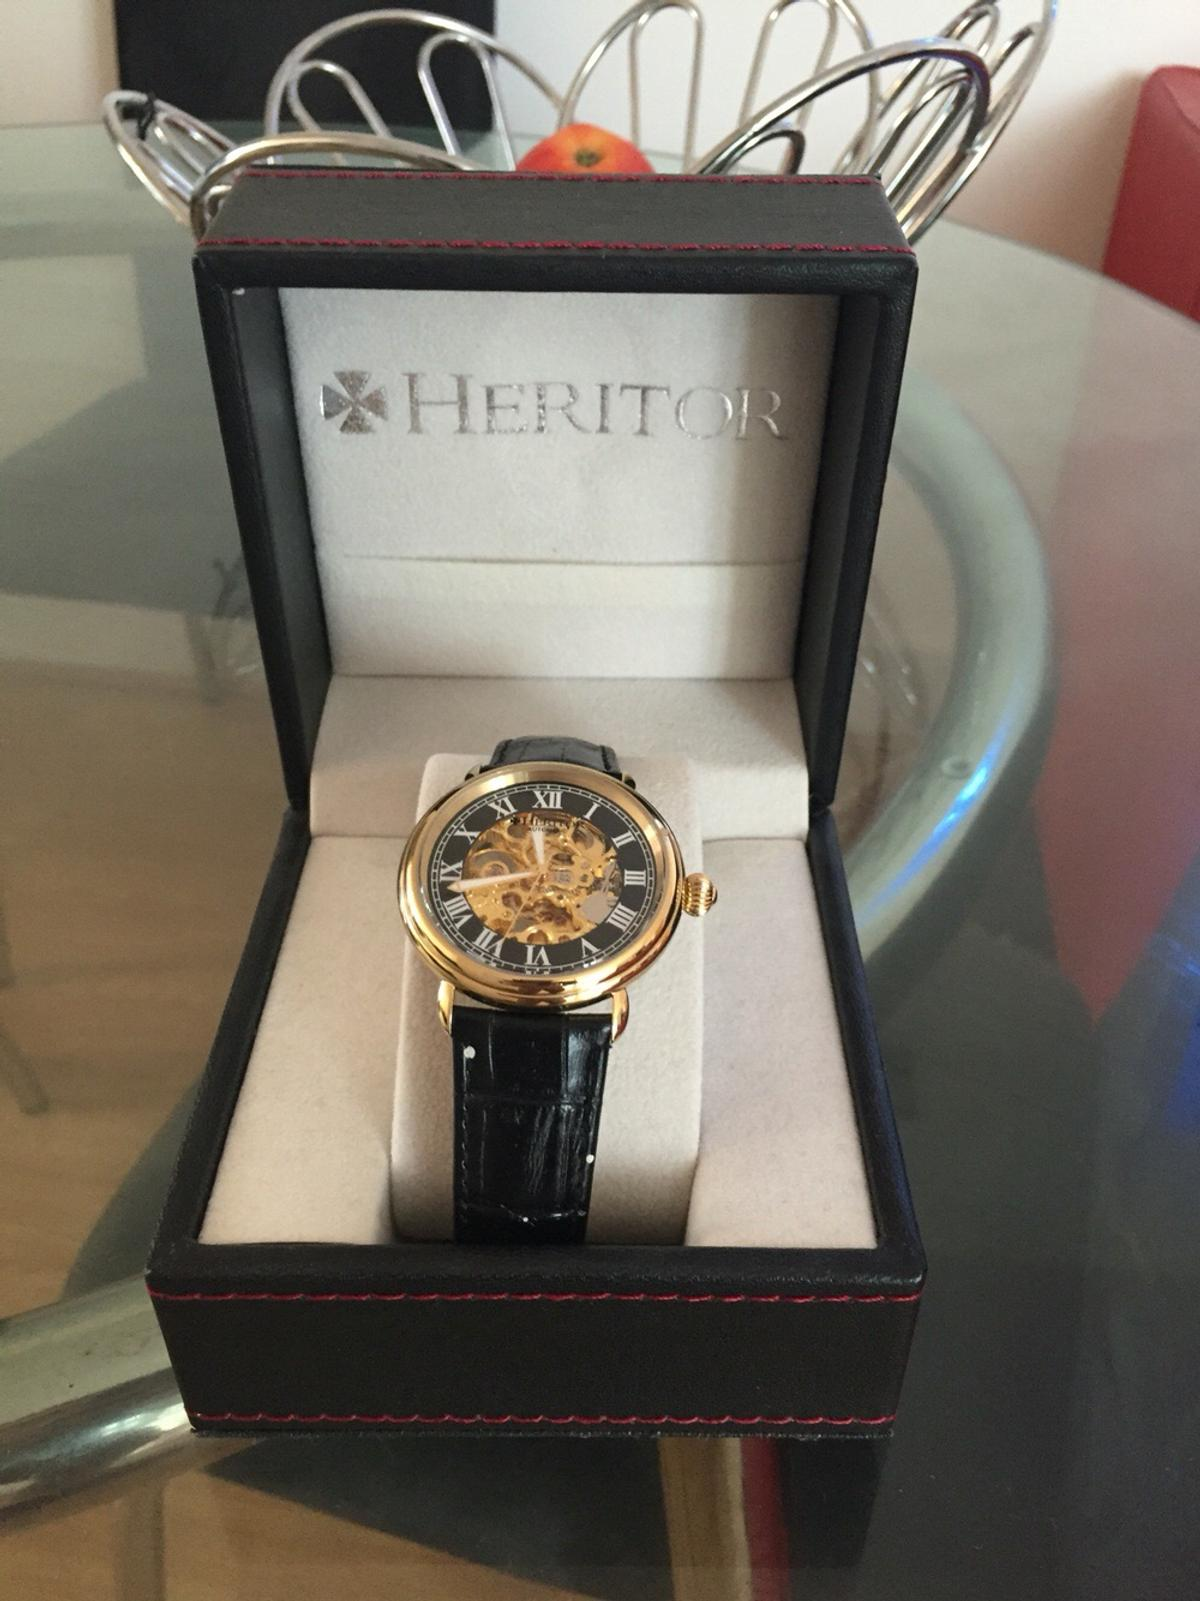 b63f29bf0 Heritor watch in GU1 Guildford for £60.00 for sale - Shpock